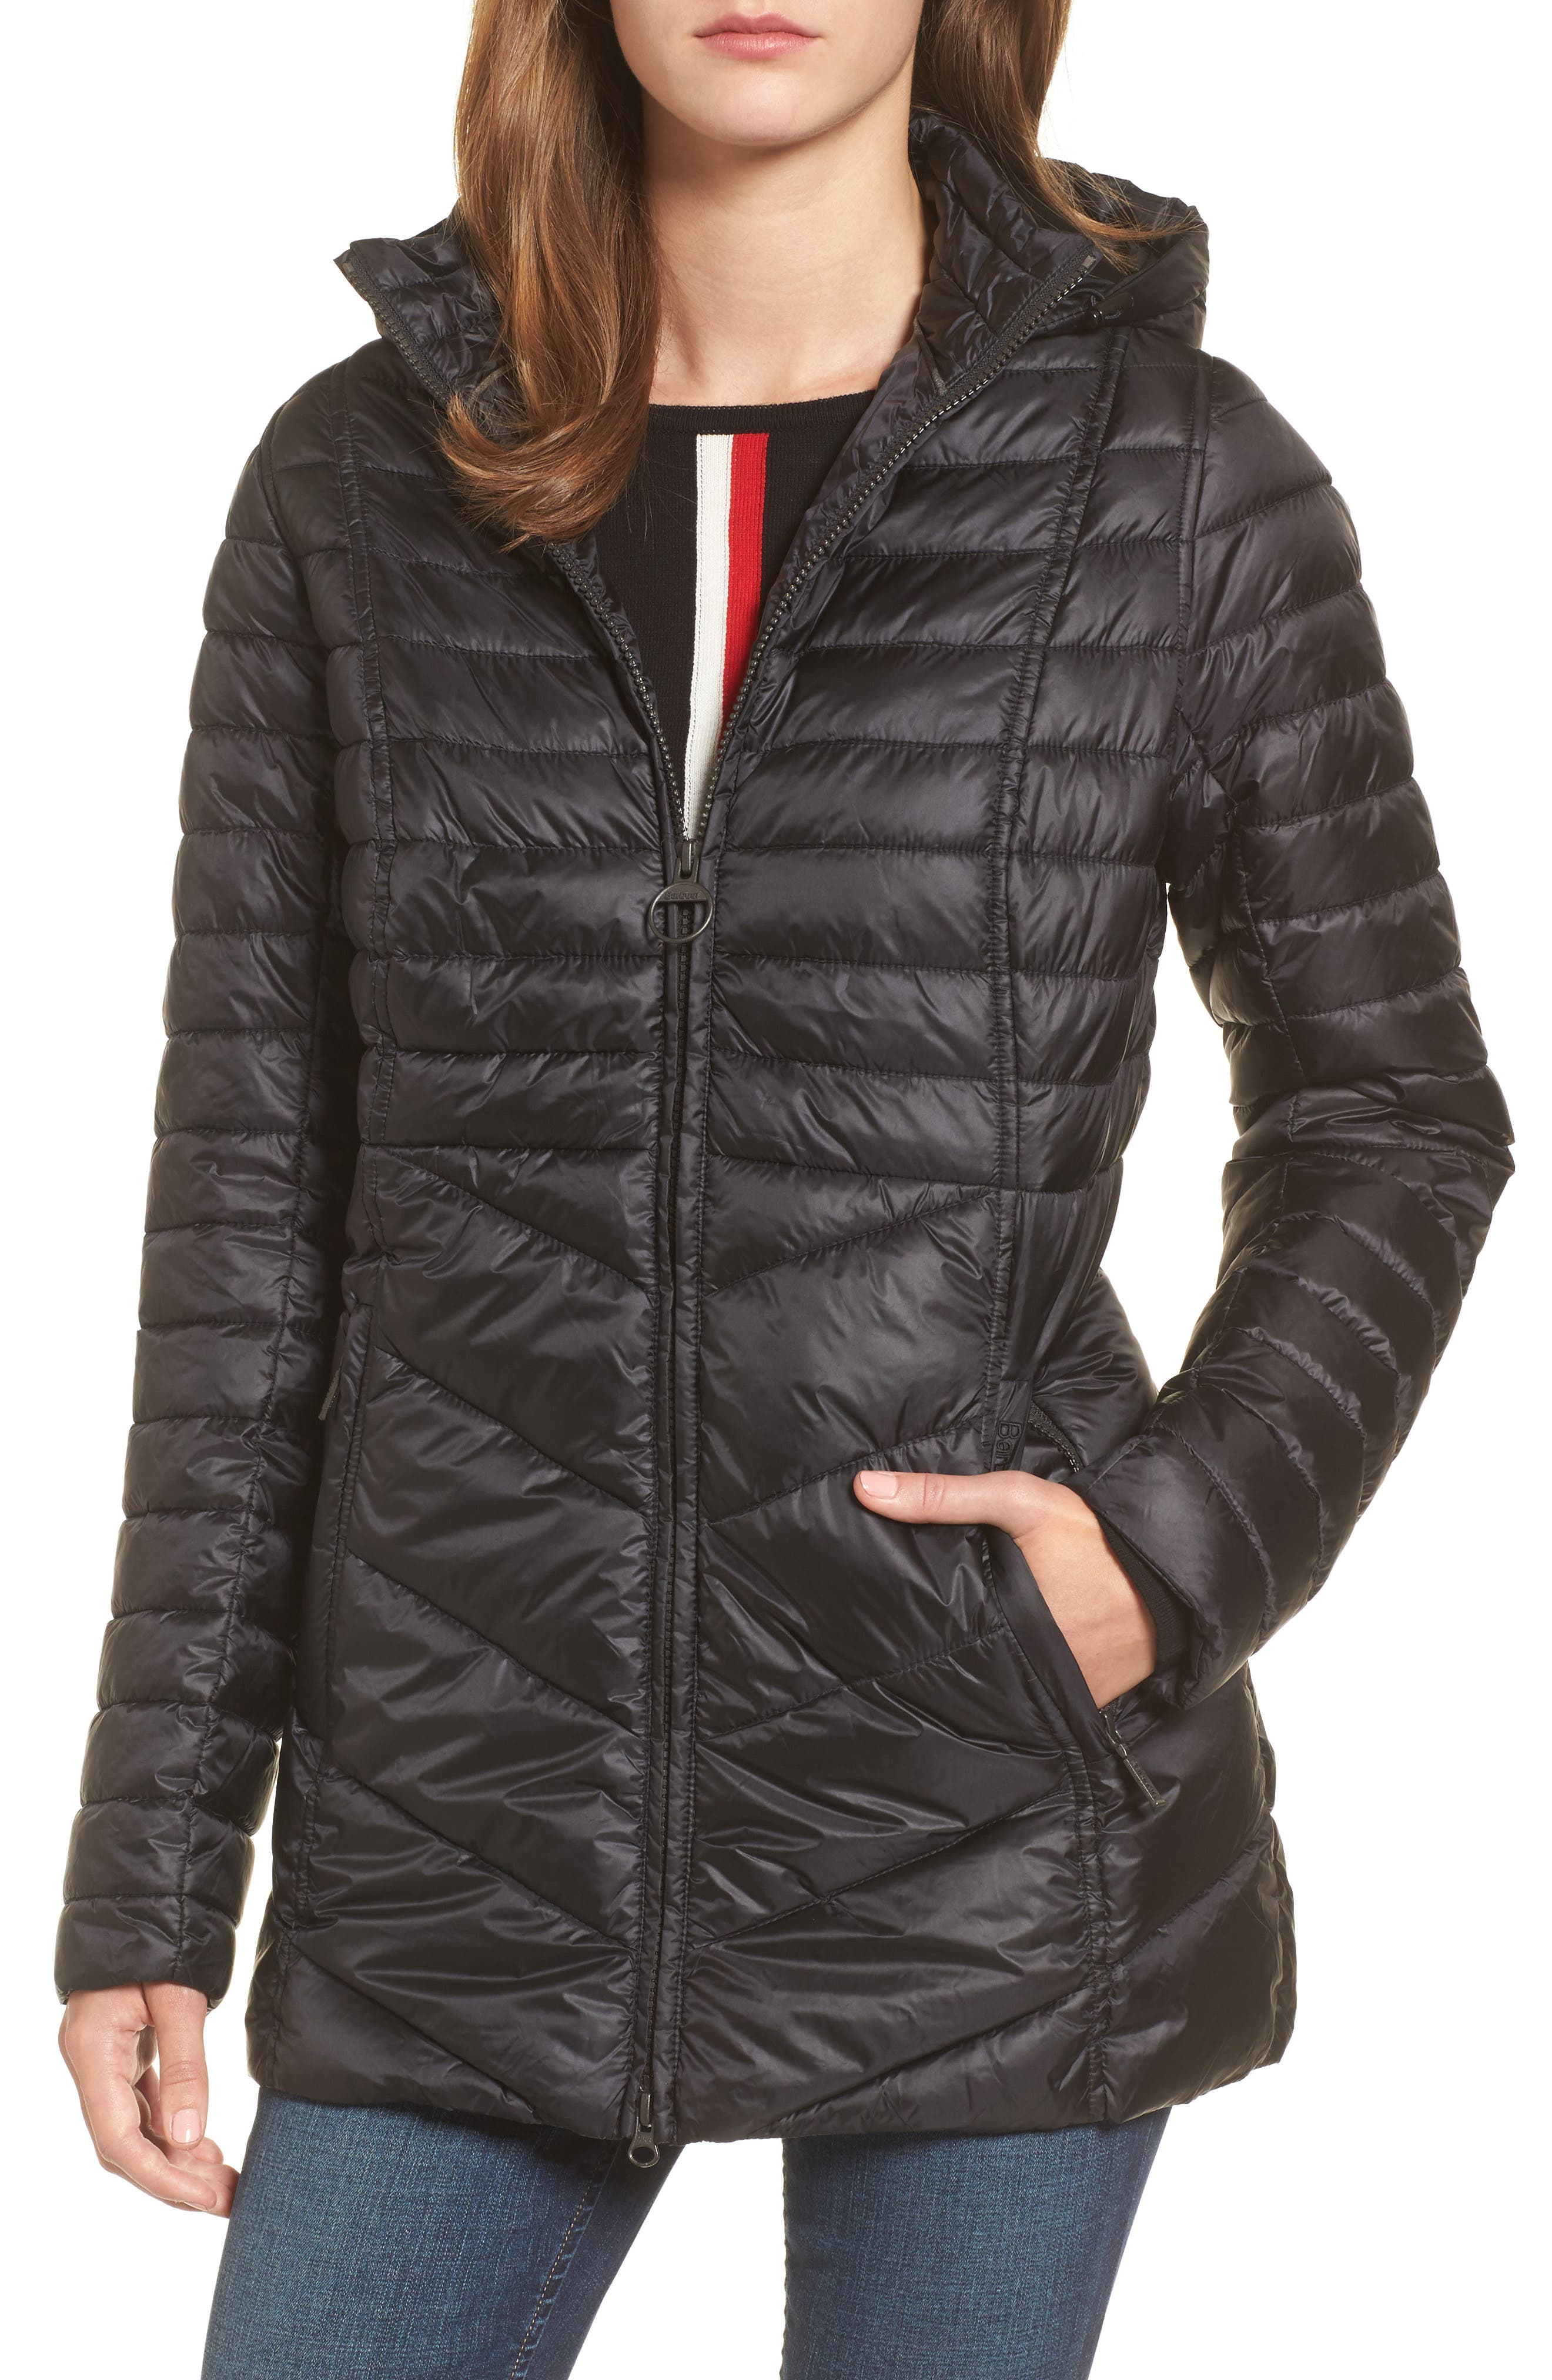 Linton Hooded Water Resistant Quilted Jacket,                         Main,                         color, Black